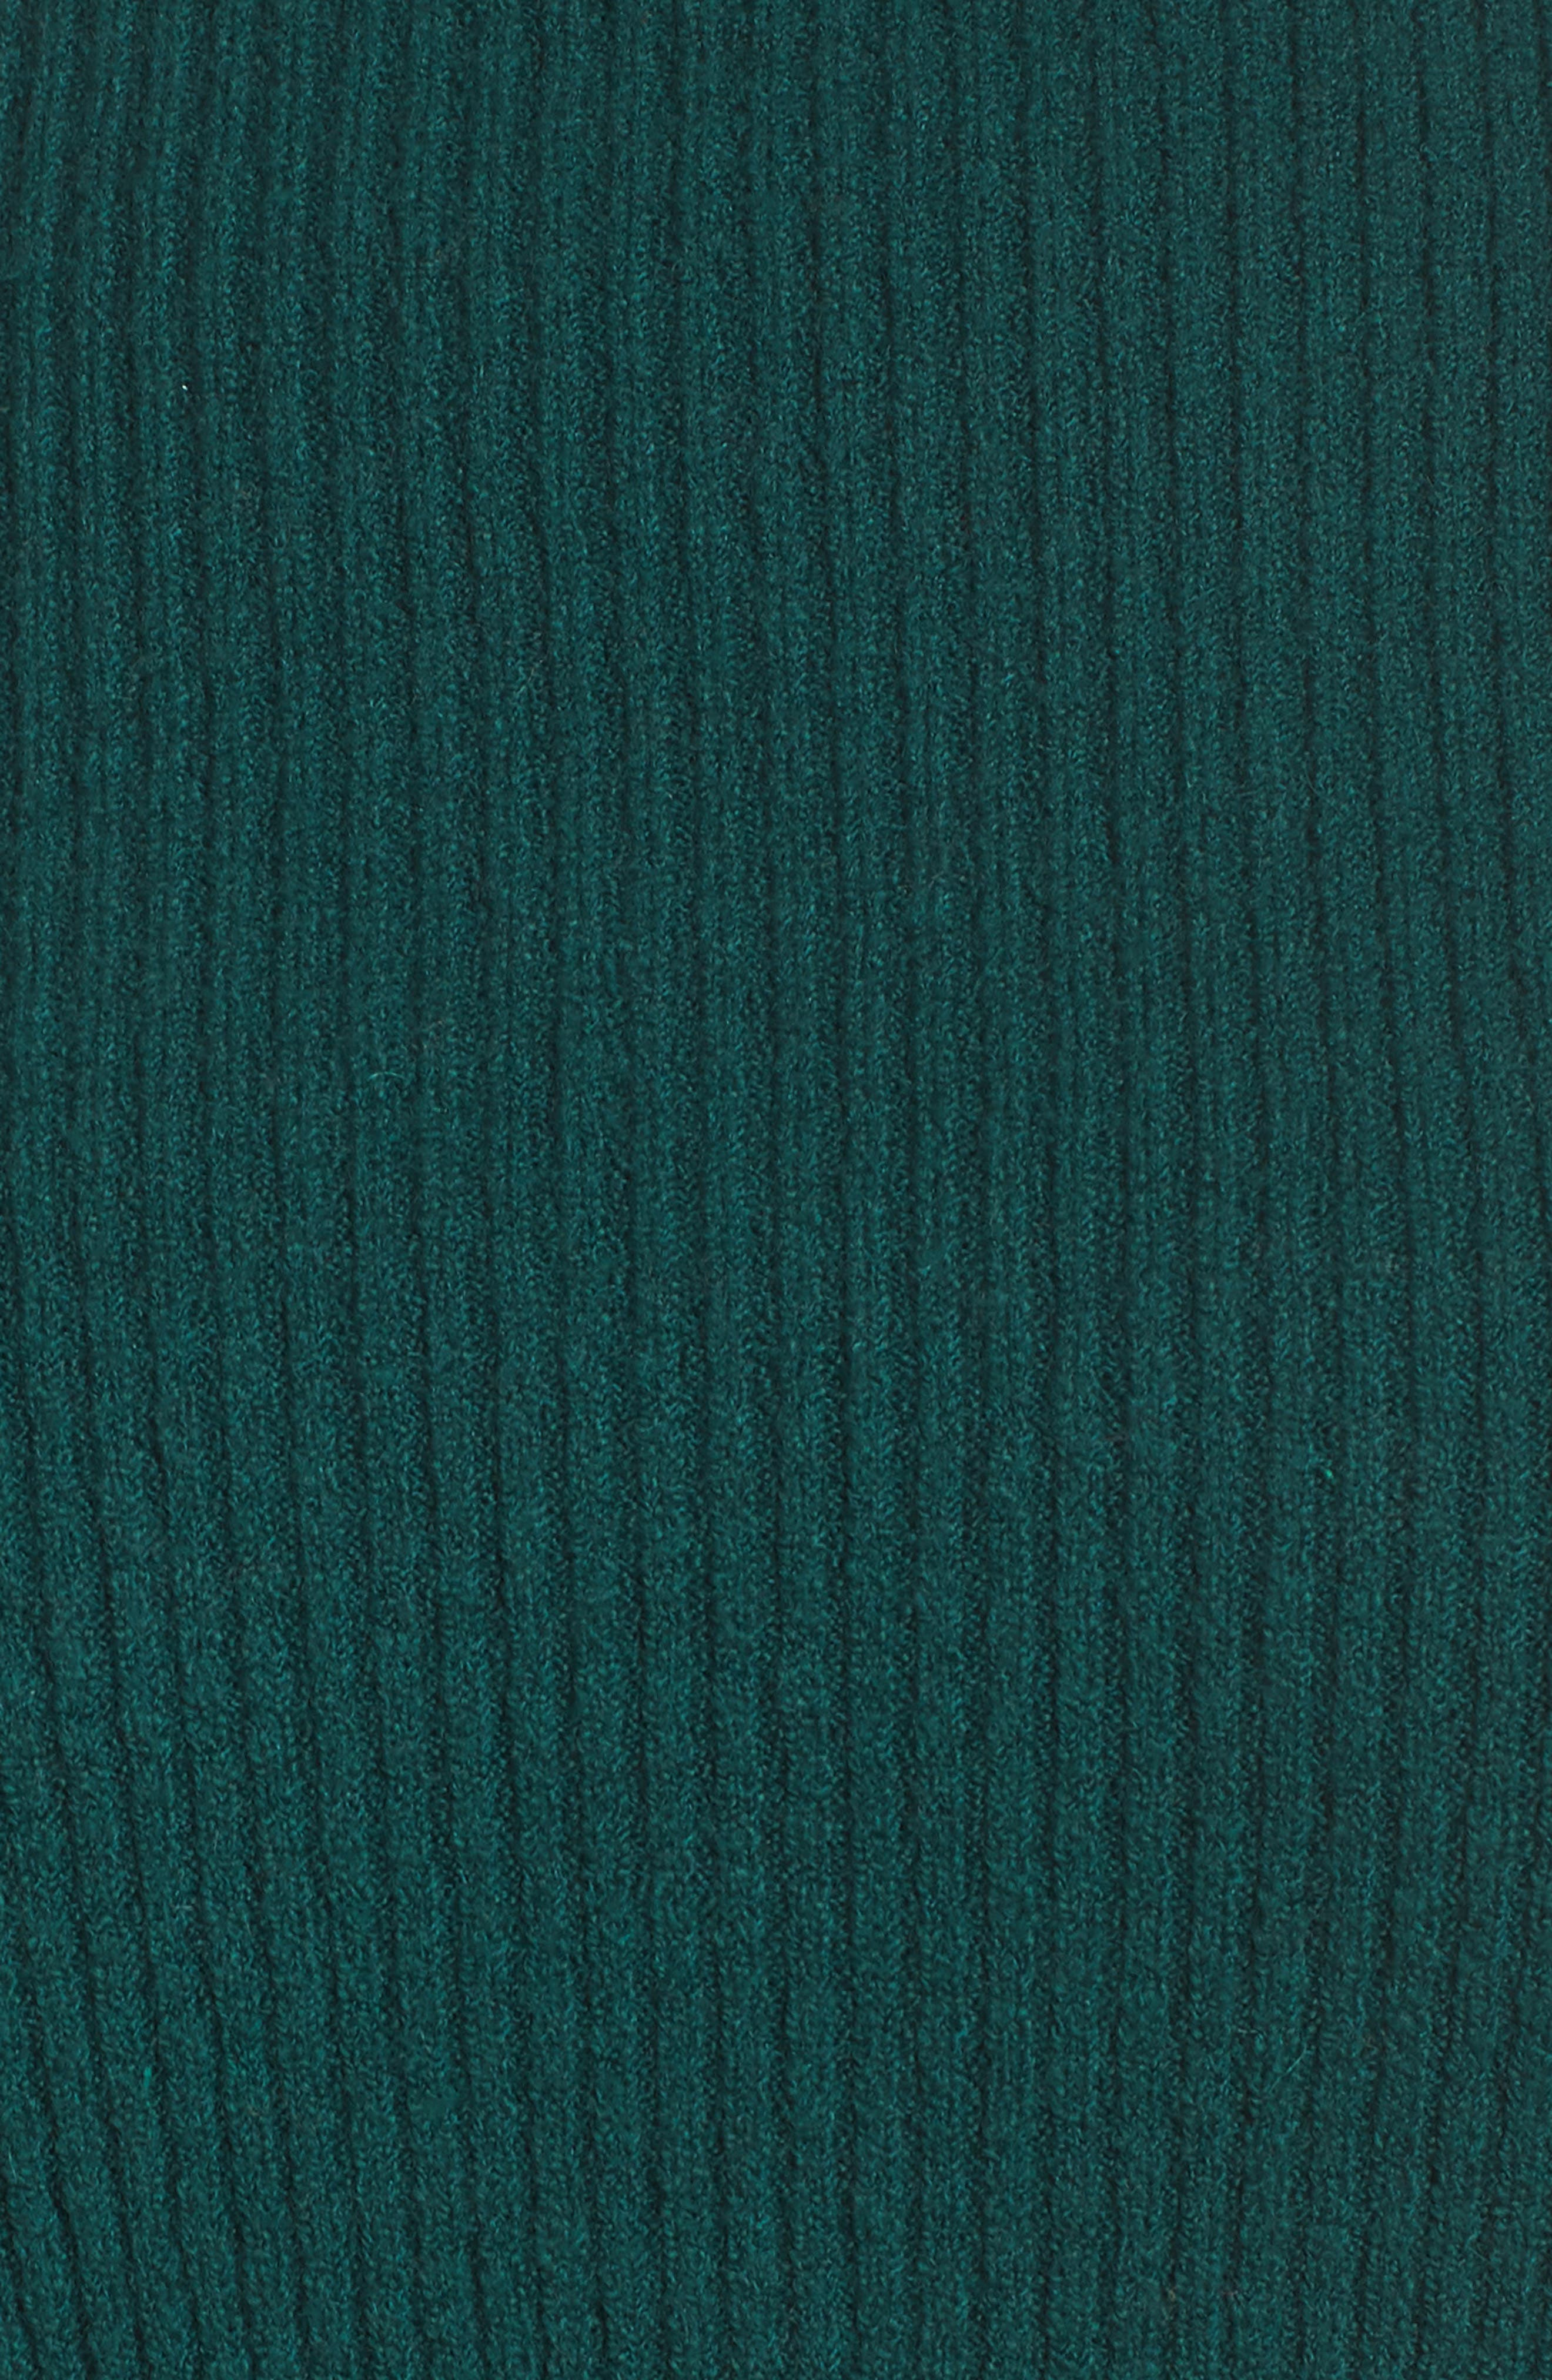 Ribbed Funnel Neck Sweater,                             Alternate thumbnail 5, color,                             GREEN BOTANICAL